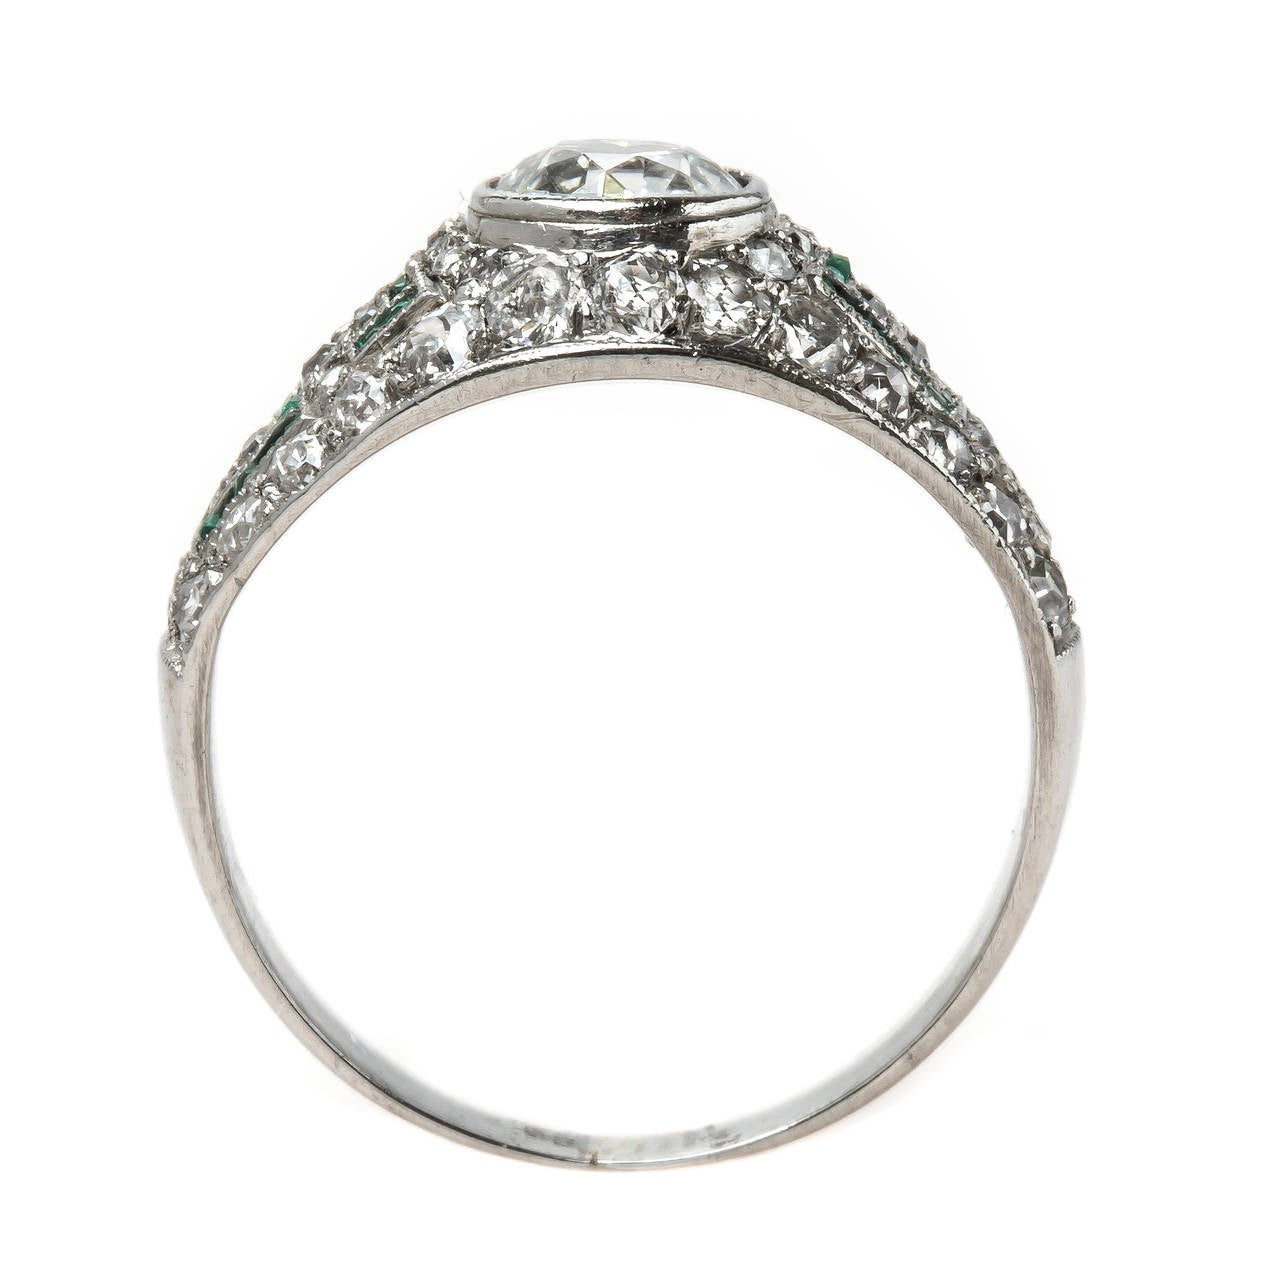 Fabulous Art Deco Bombé Style Emerald Diamond Platinum Engagement Ring at 1st